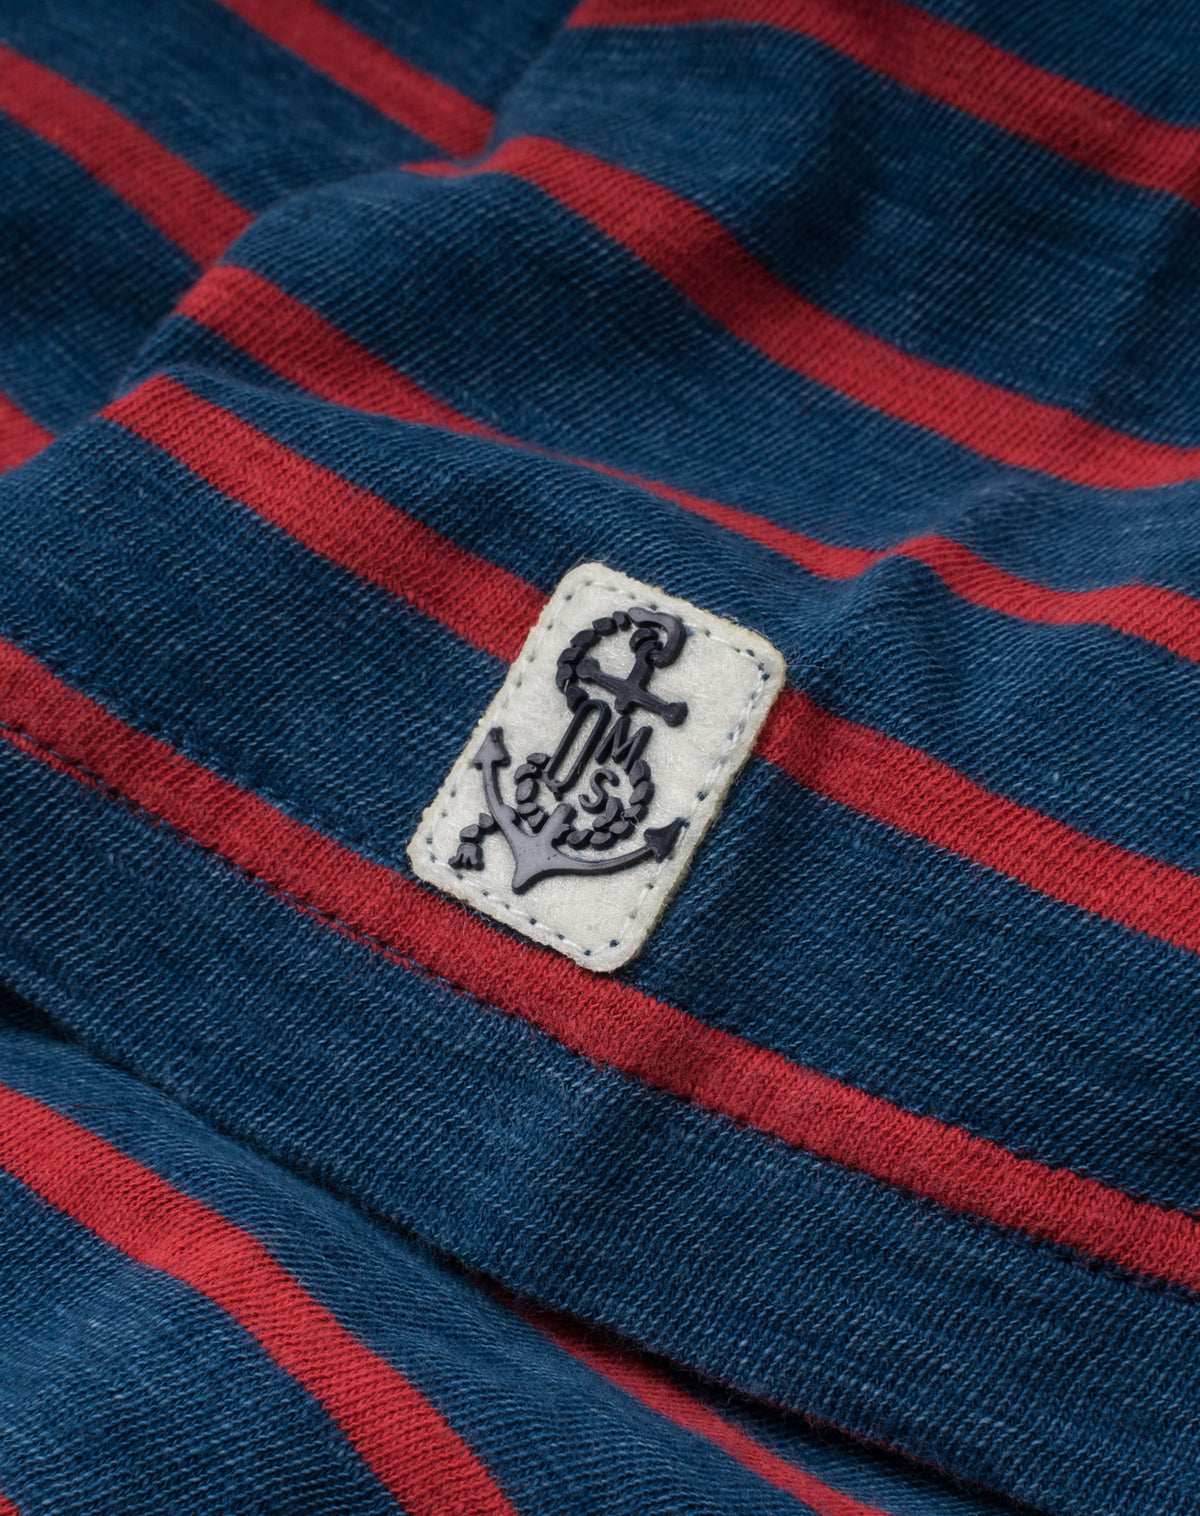 Indigo Pocket Tee in Red/Navy Stripe